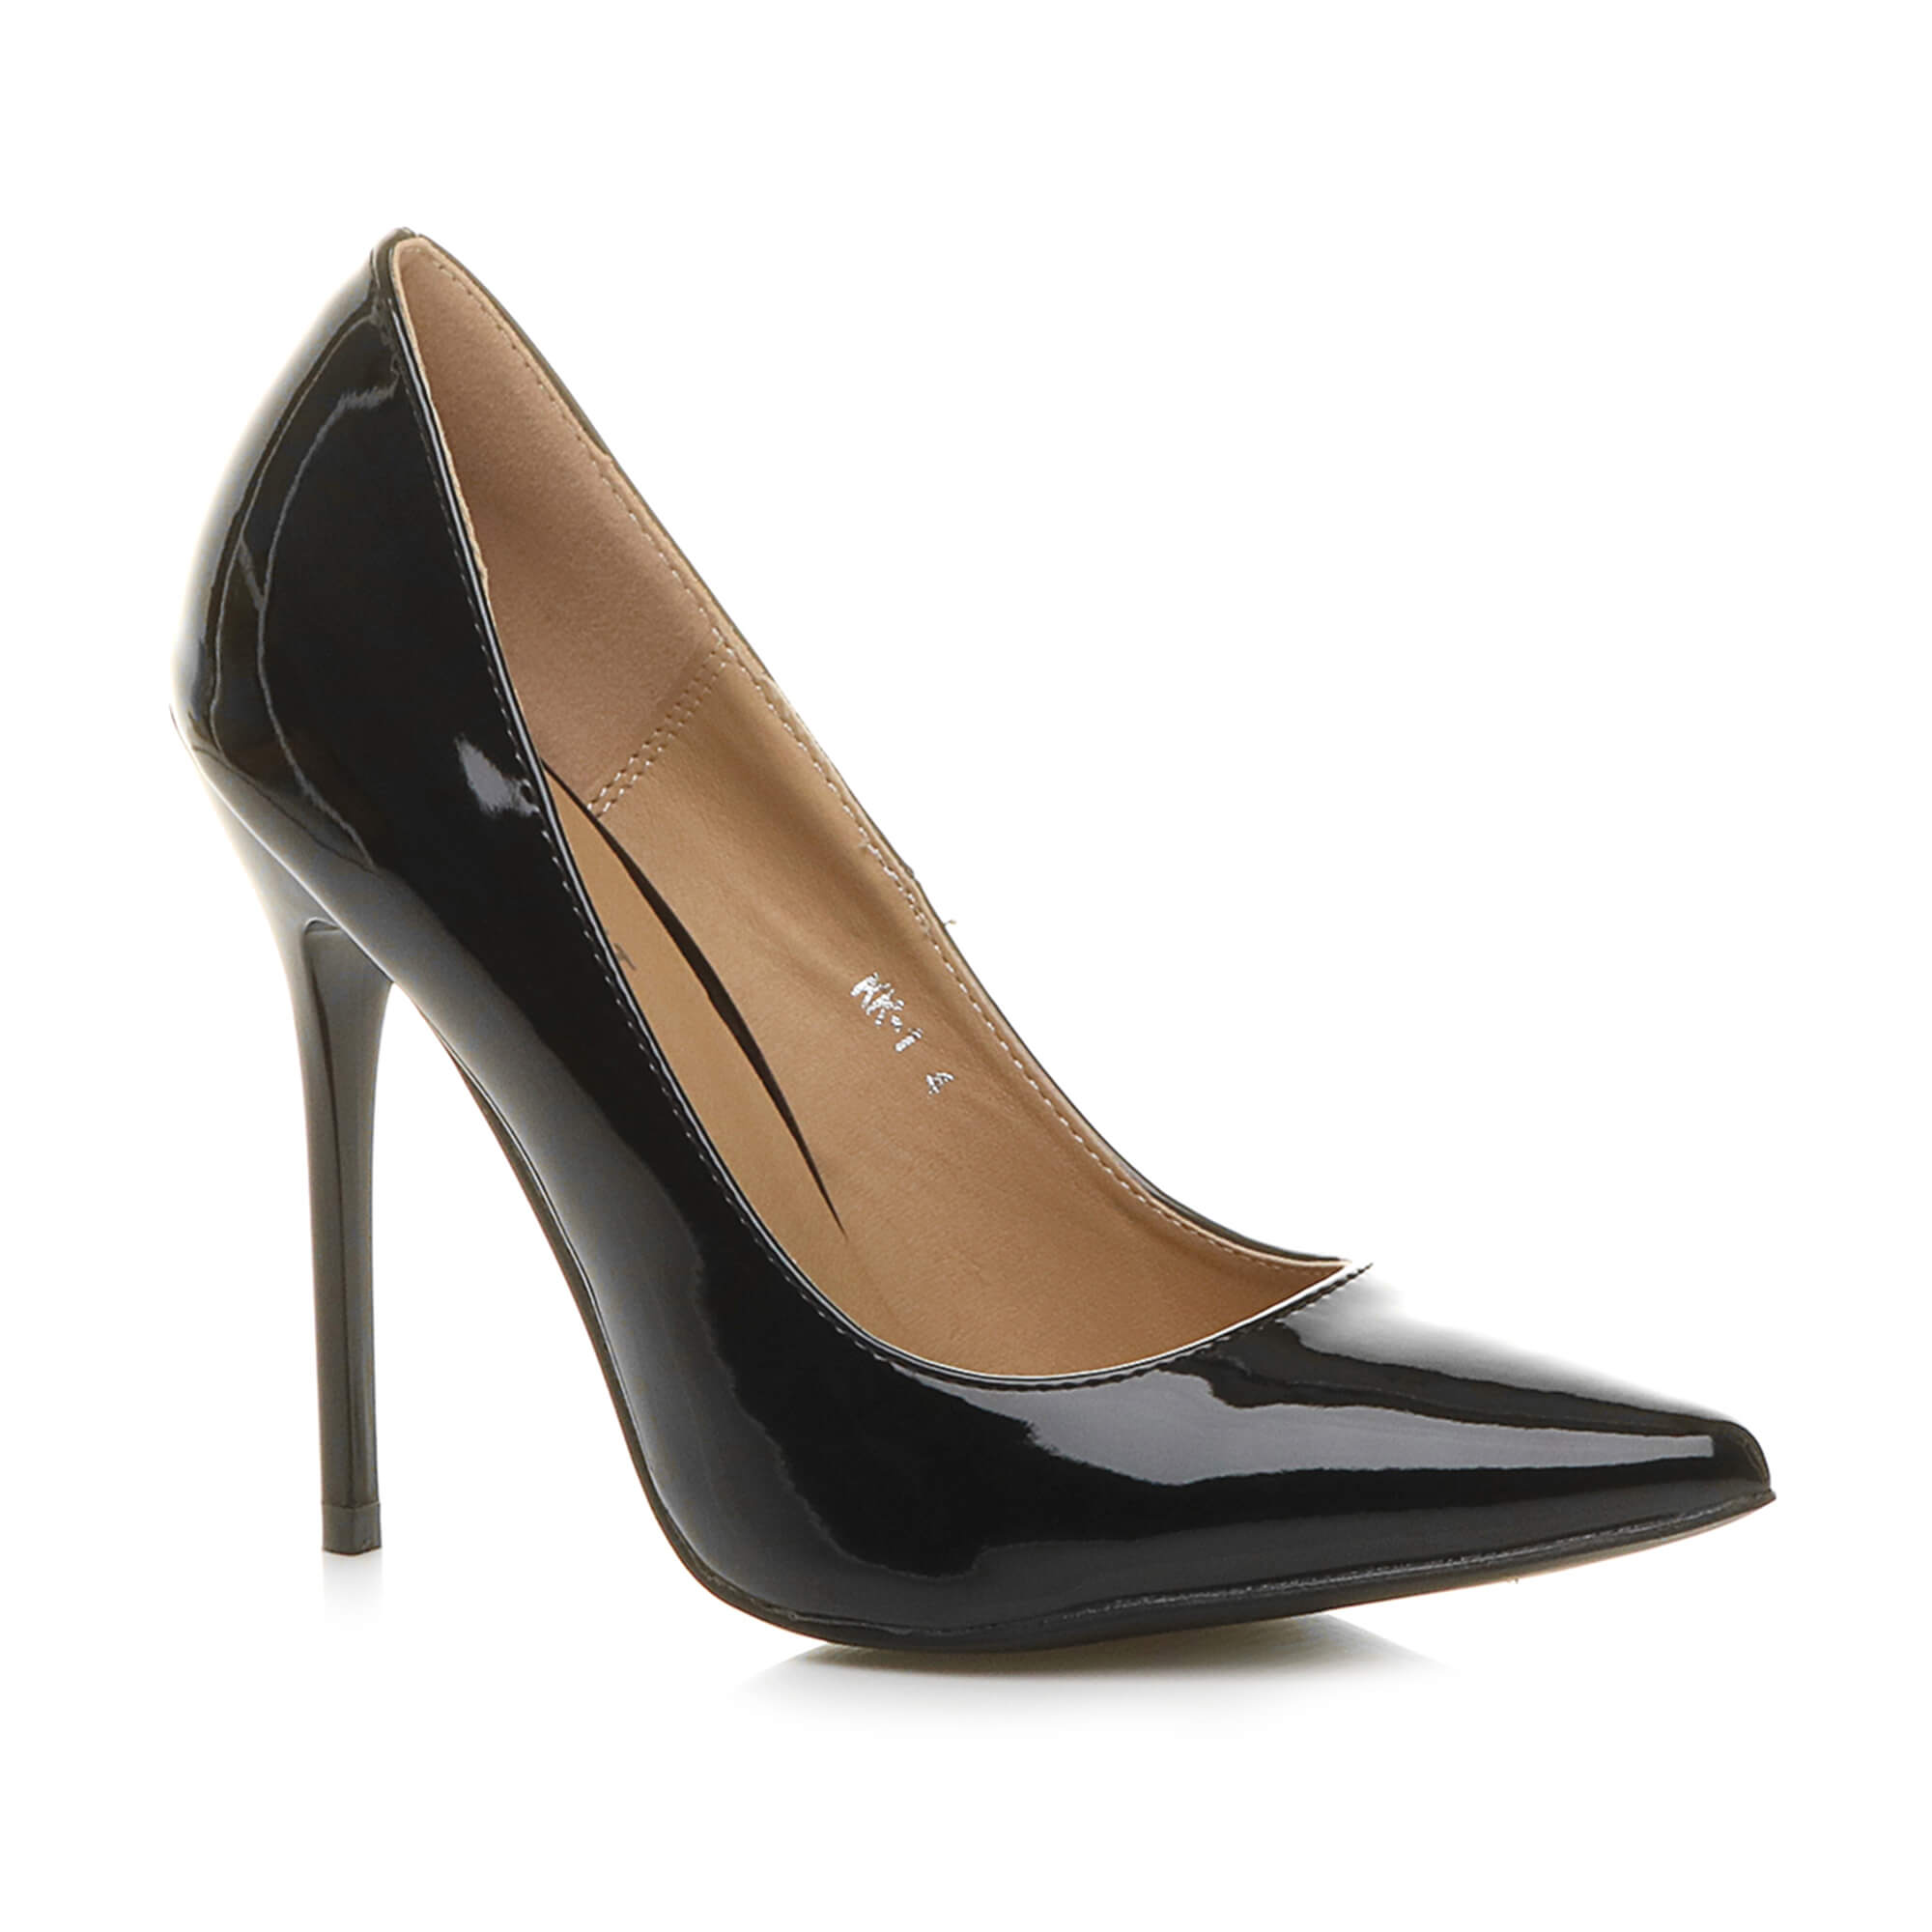 e588c94bed52a ... Ladies Pointed Contrast High Heel Smart Party Work PUMPS Court Shoes  Size UK 3 / EU 36 / US 5 Black Patent. About this product. Picture 1 of 2;  Picture ...